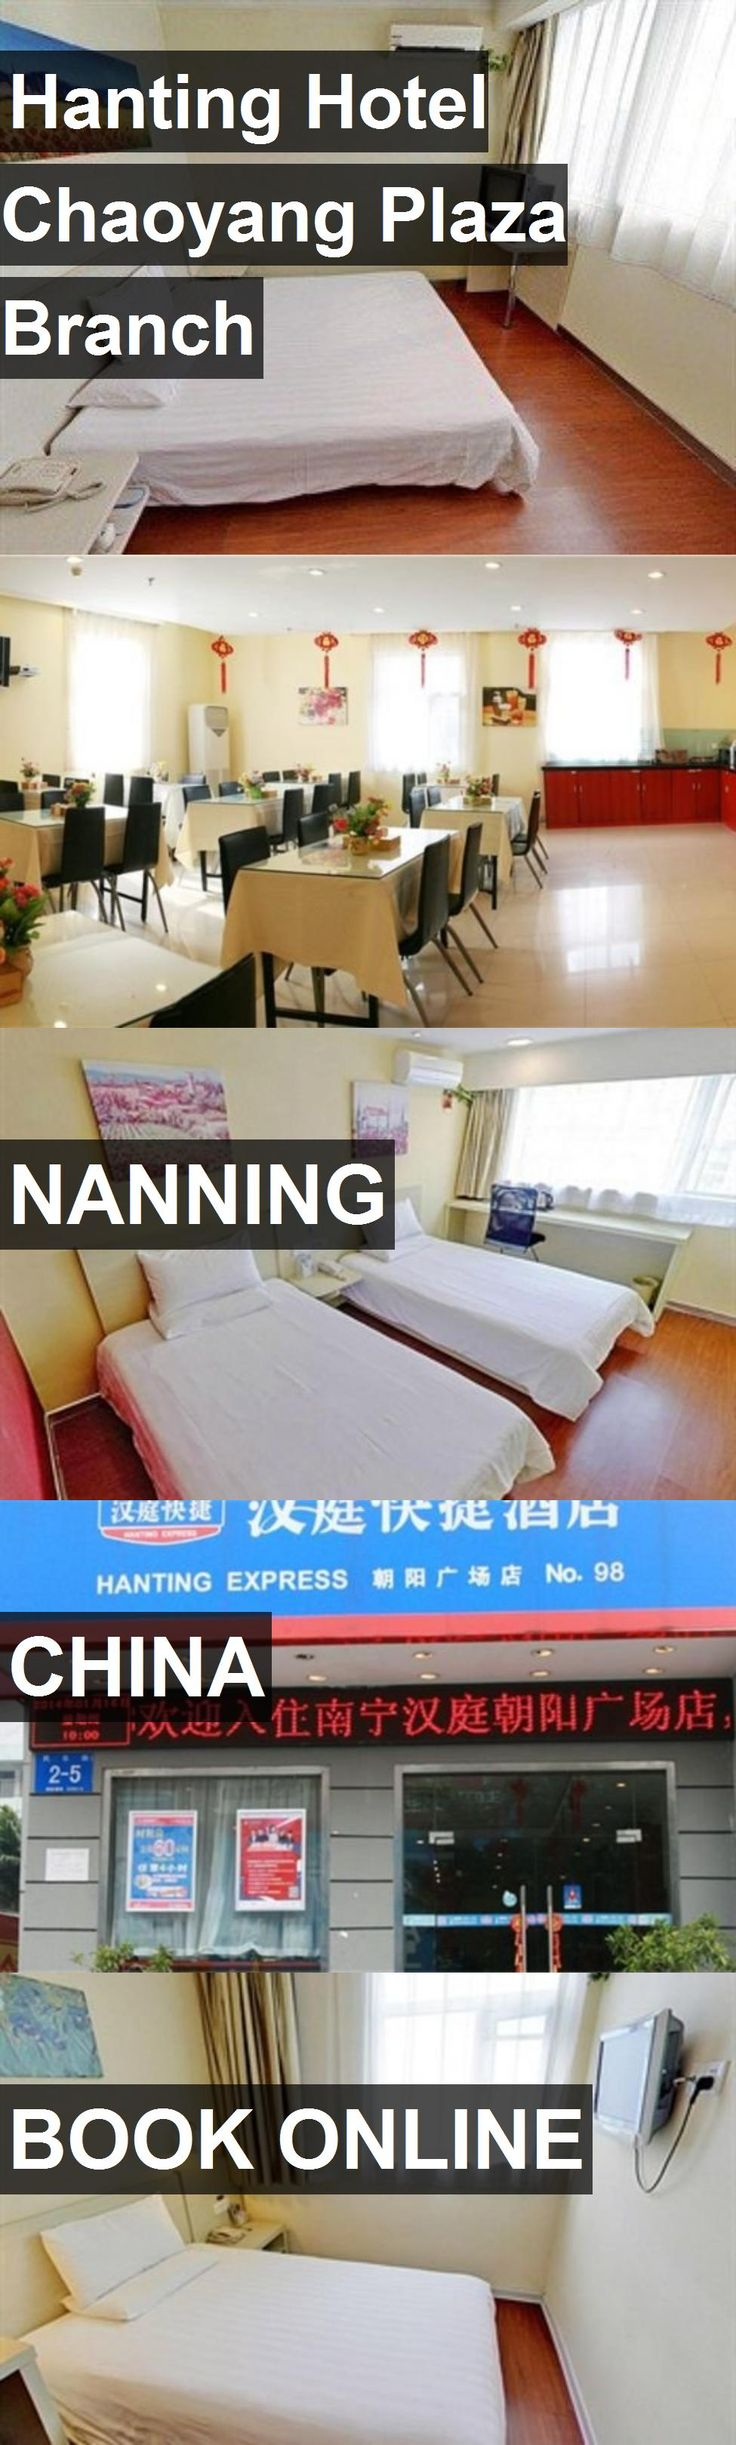 Hanting Hotel Chaoyang Plaza Branch in Nanning, China. For more information, photos, reviews and best prices please follow the link. #China #Nanning #travel #vacation #hotel